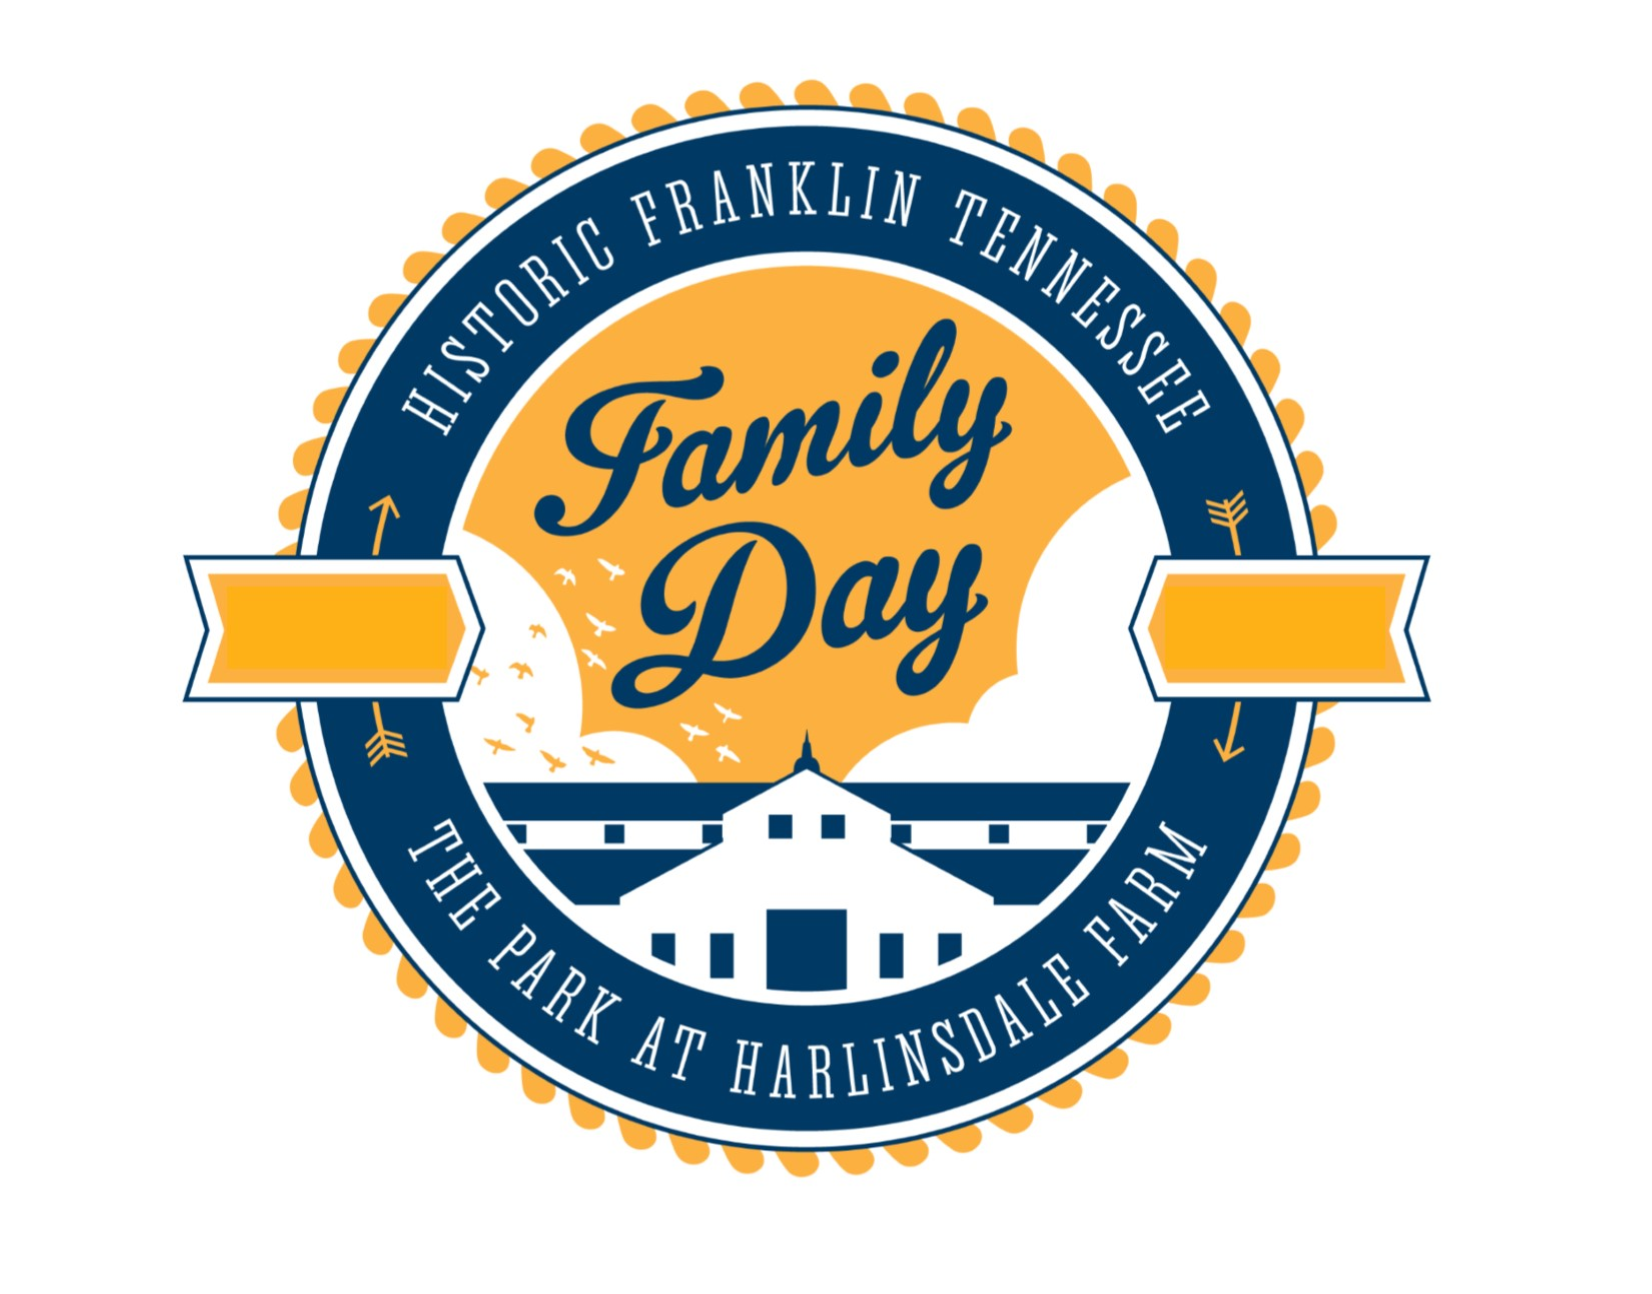 Family Day event logo